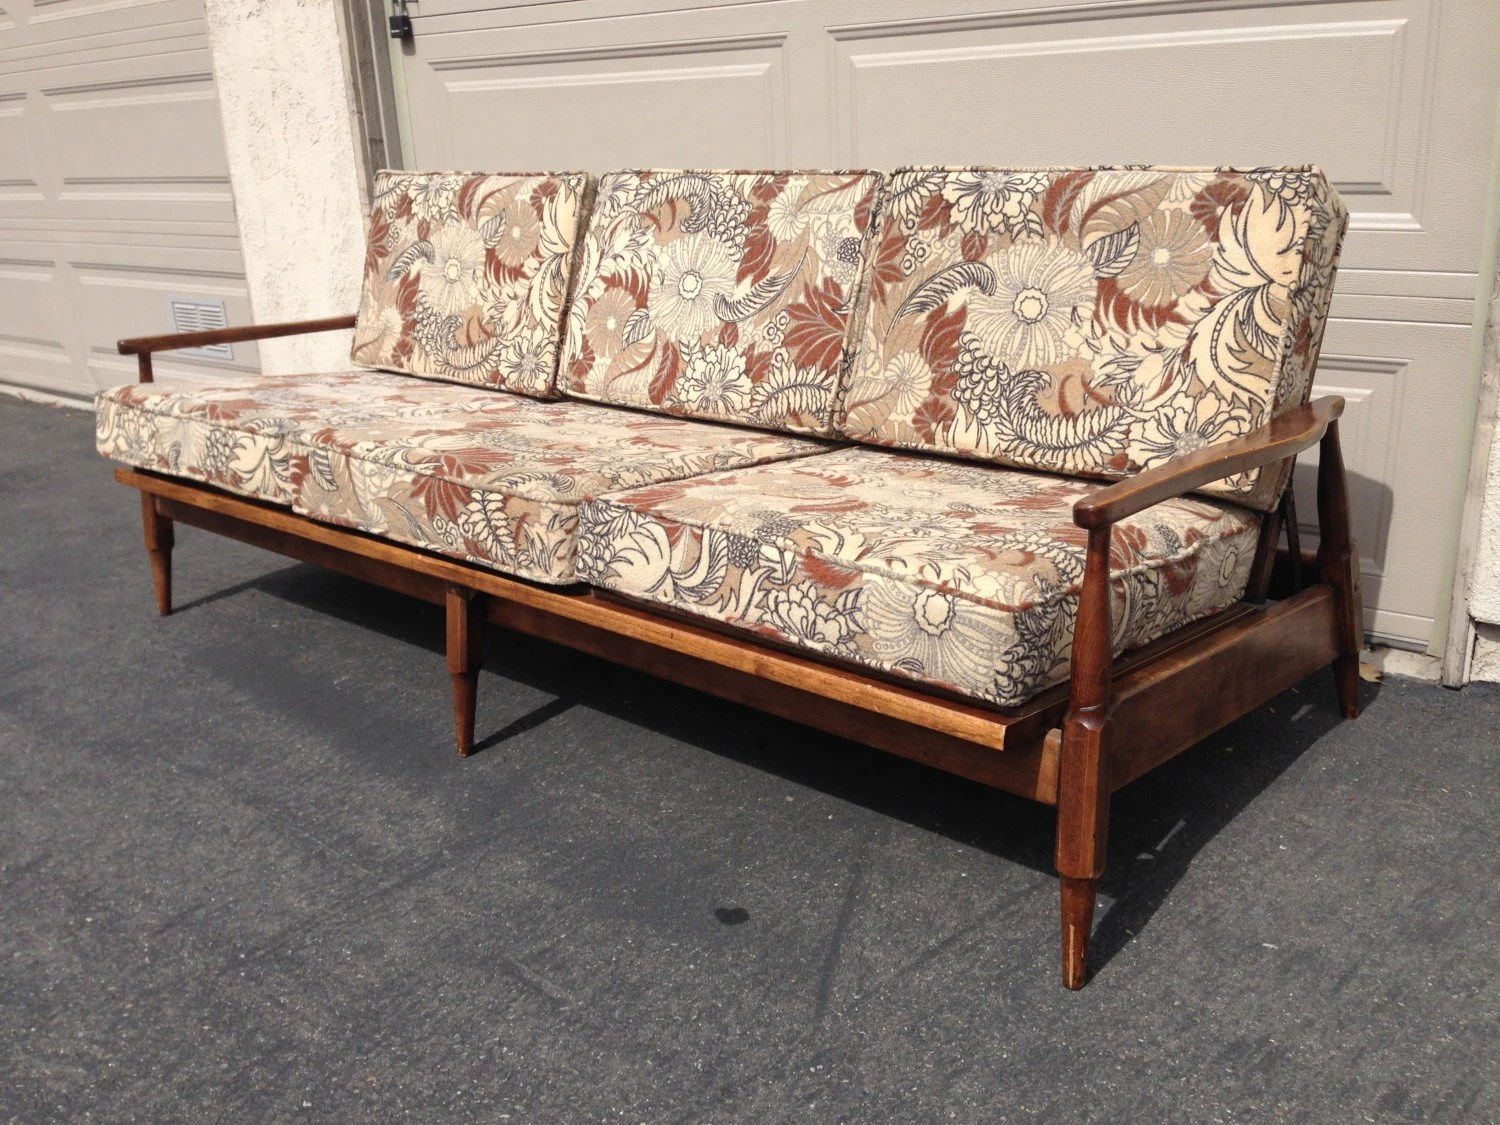 modern sofa chair royal throne chairs for sale mid century couch loveseat sleeper daybed teak